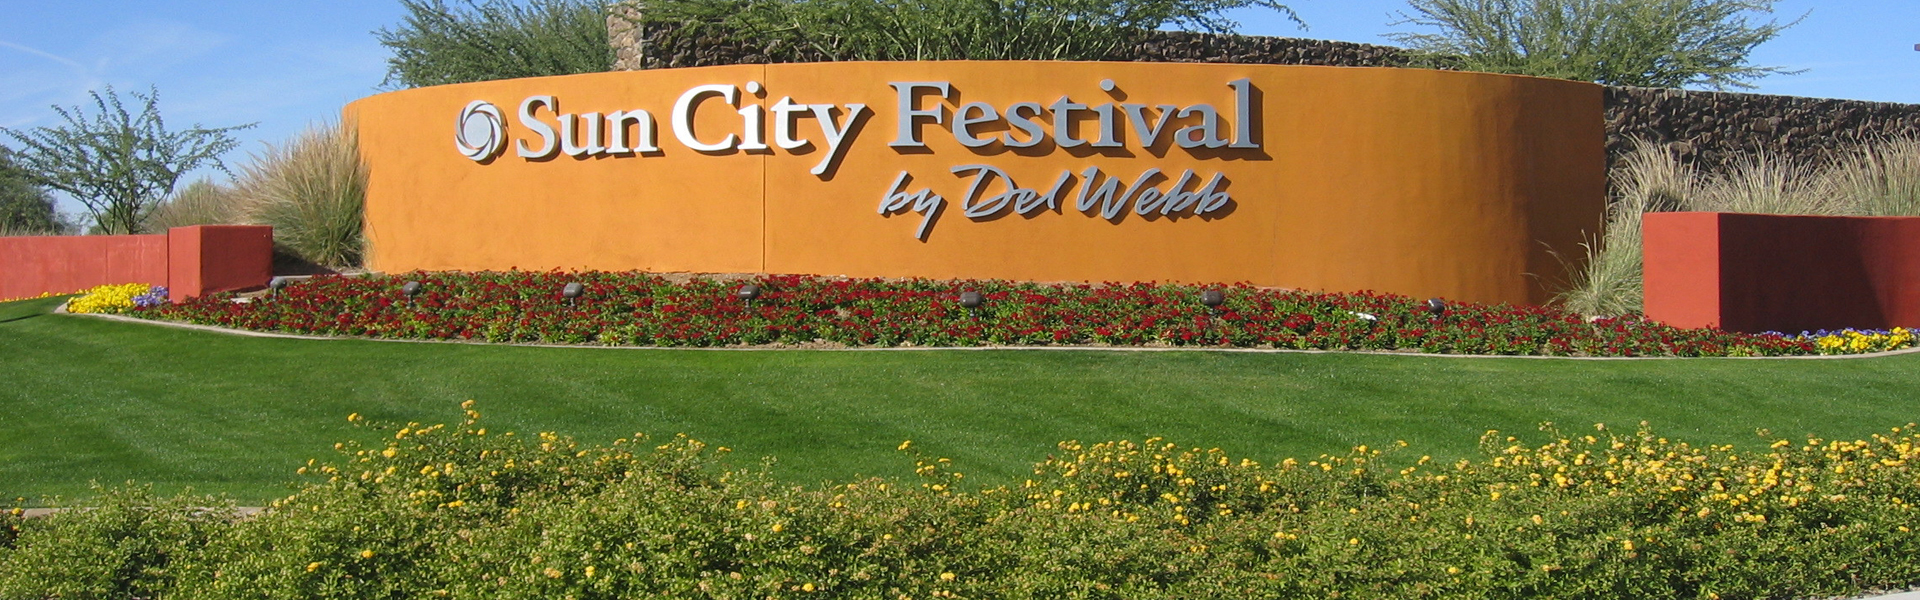 real estate for sale in sun city festival